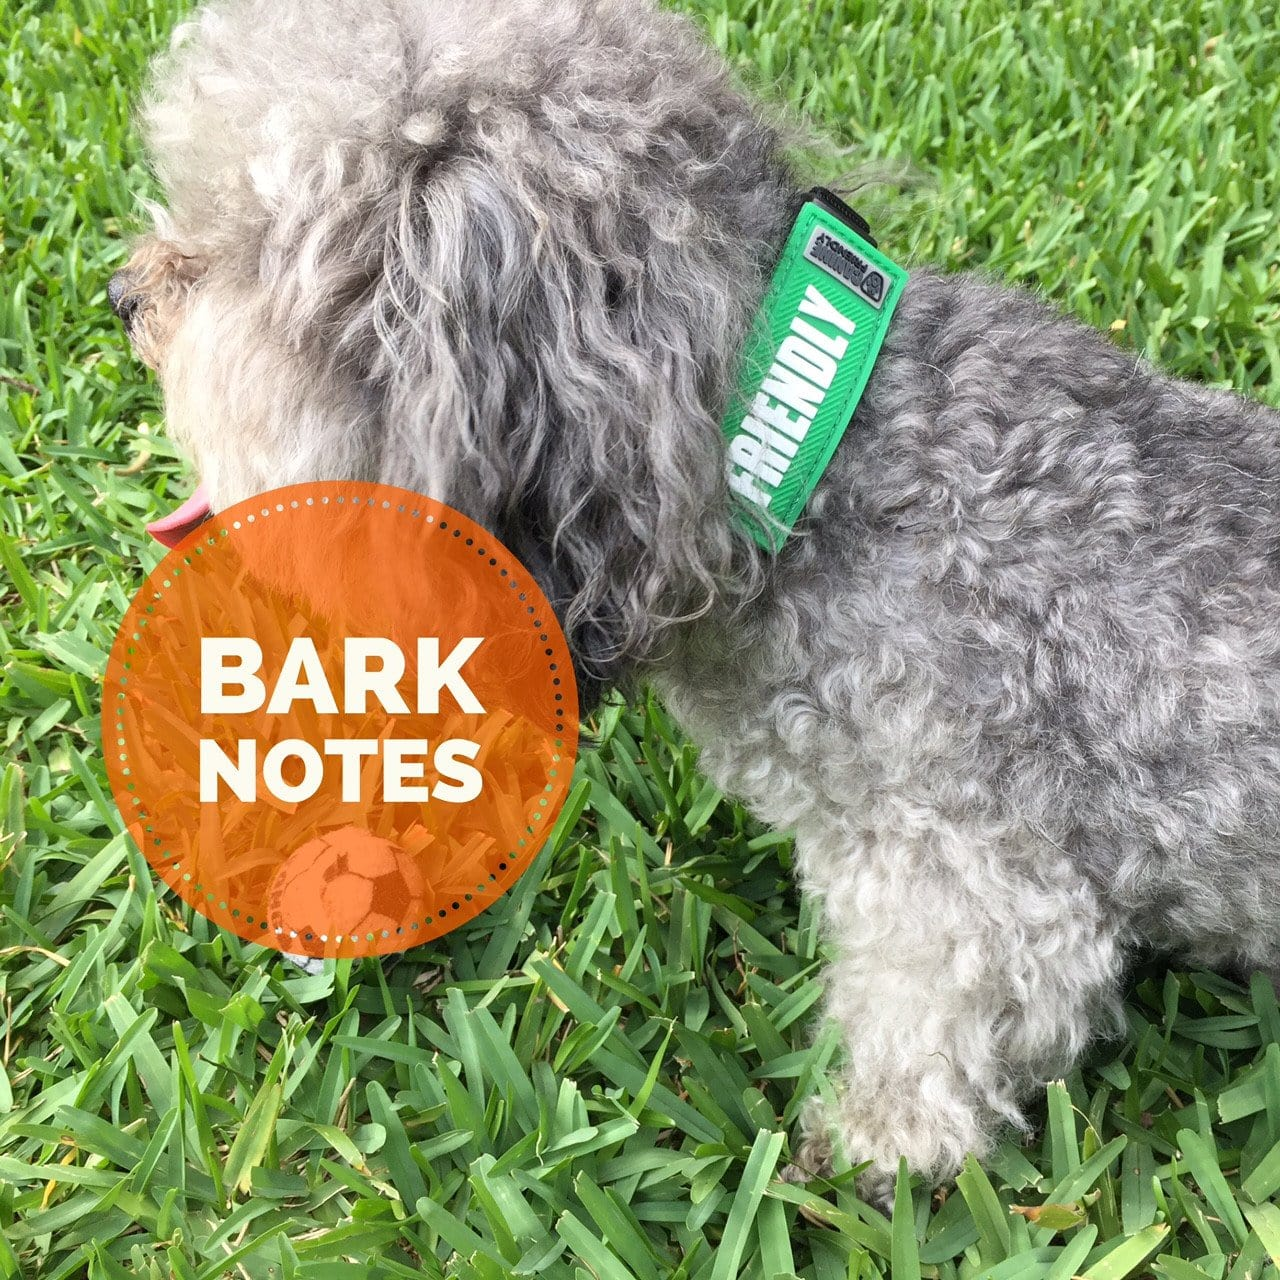 Bark Notes - Collar Accessories That Speak For Your Dog.